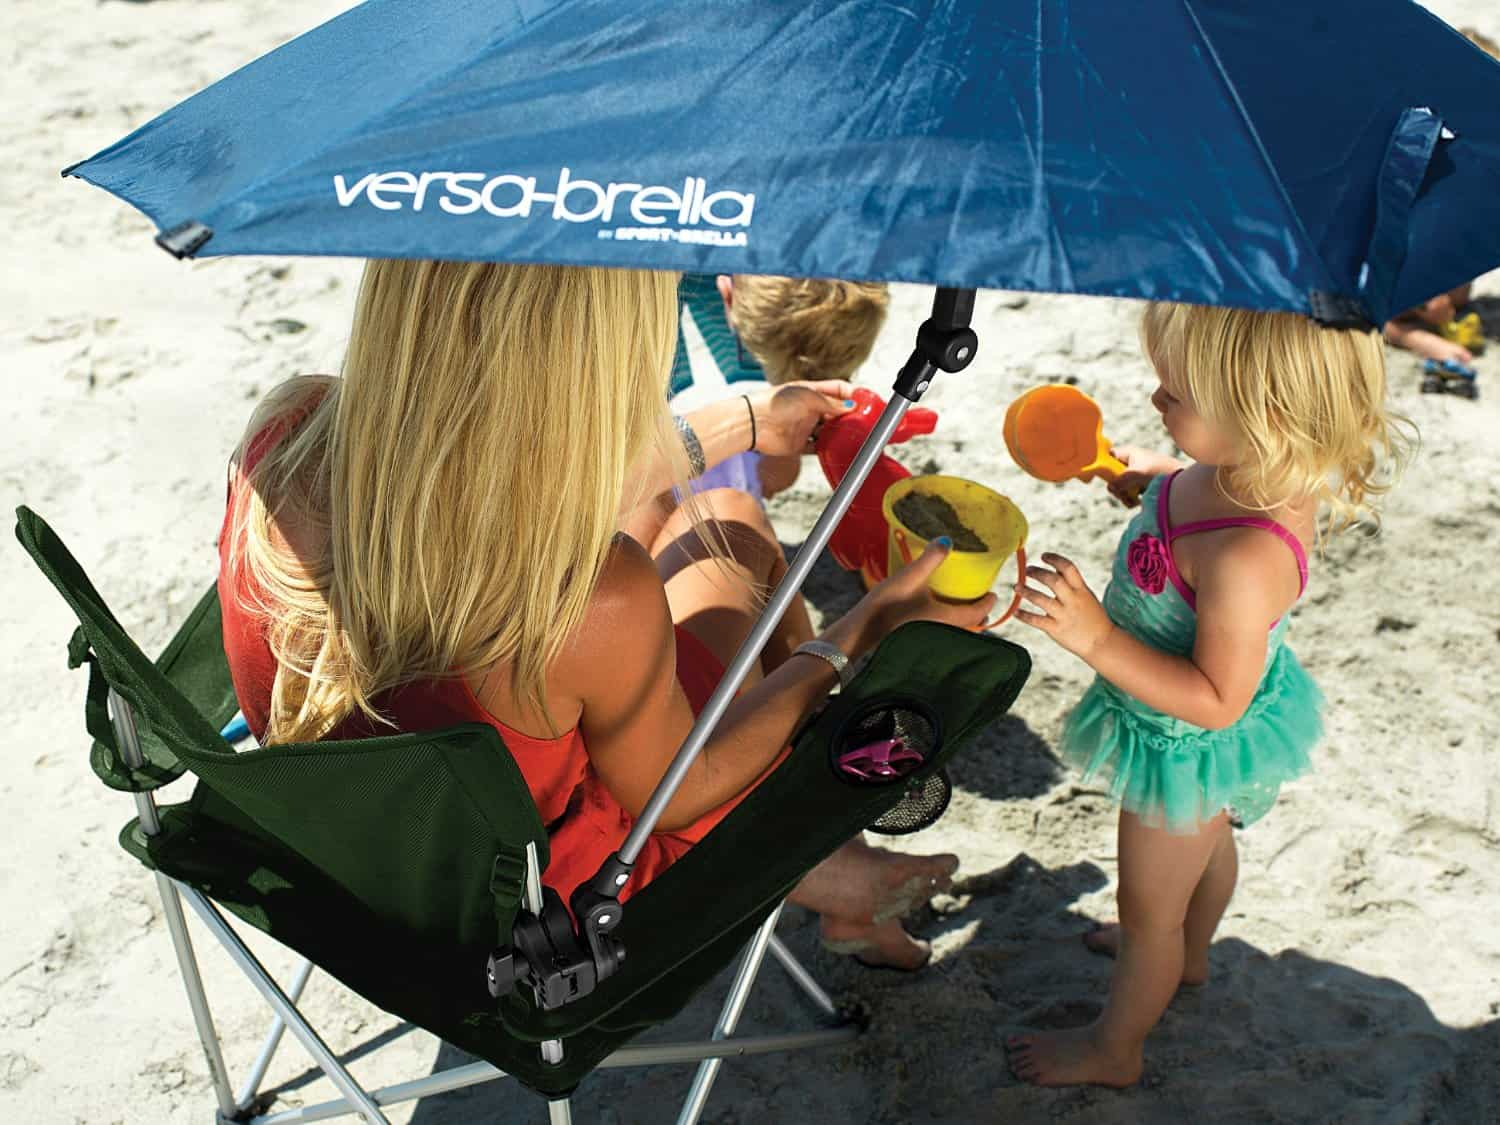 Sport-Brella Versa-Brella All Position Umbrella Portable Sun Shade for Beach